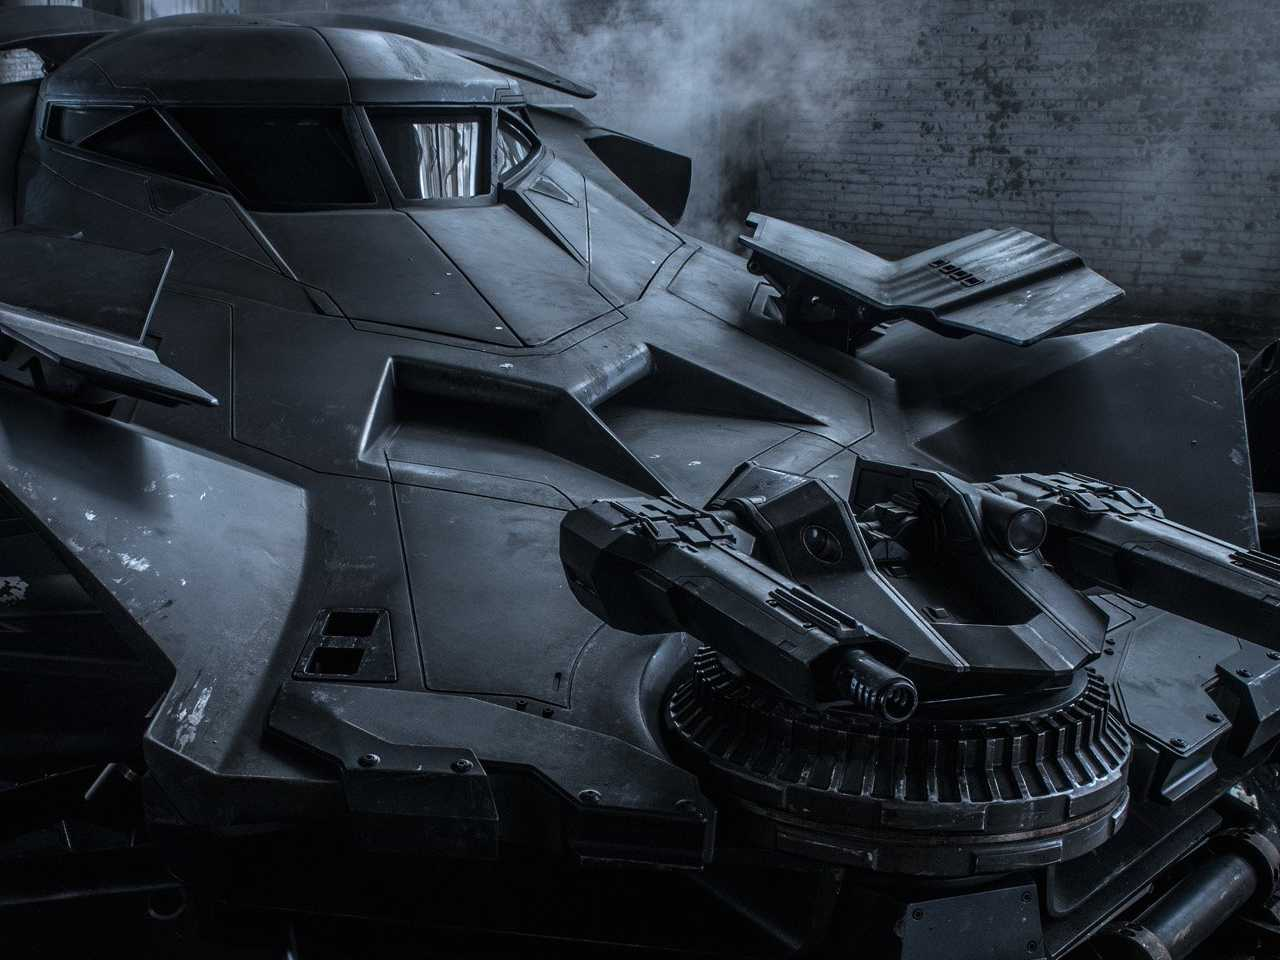 heres-the-first-official-photo-of-the-batmobile-in-batman-v-superman